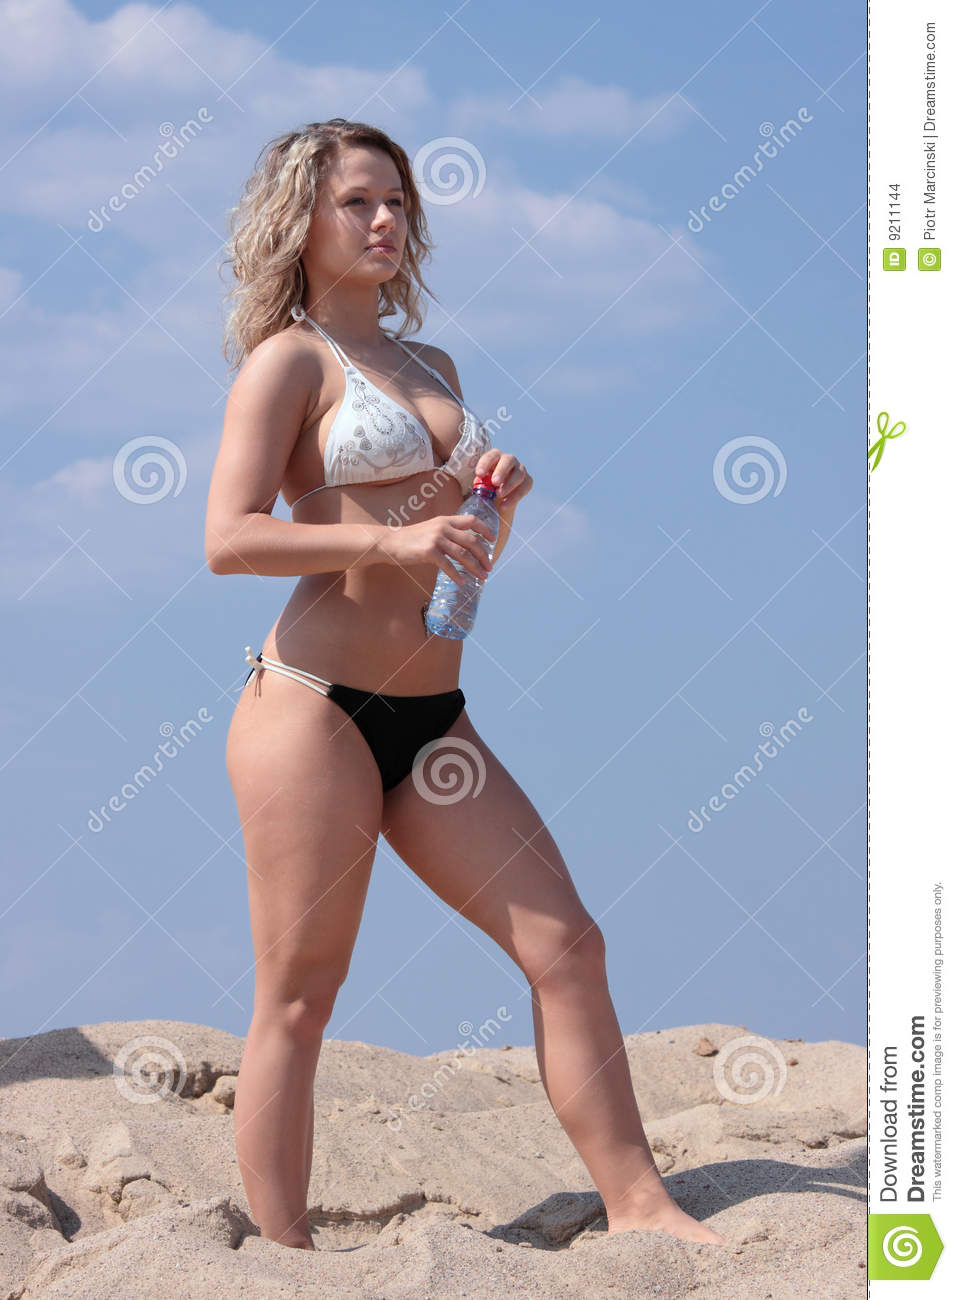 Mdchen Bikini Stock-Fotos und Bilder Getty Images